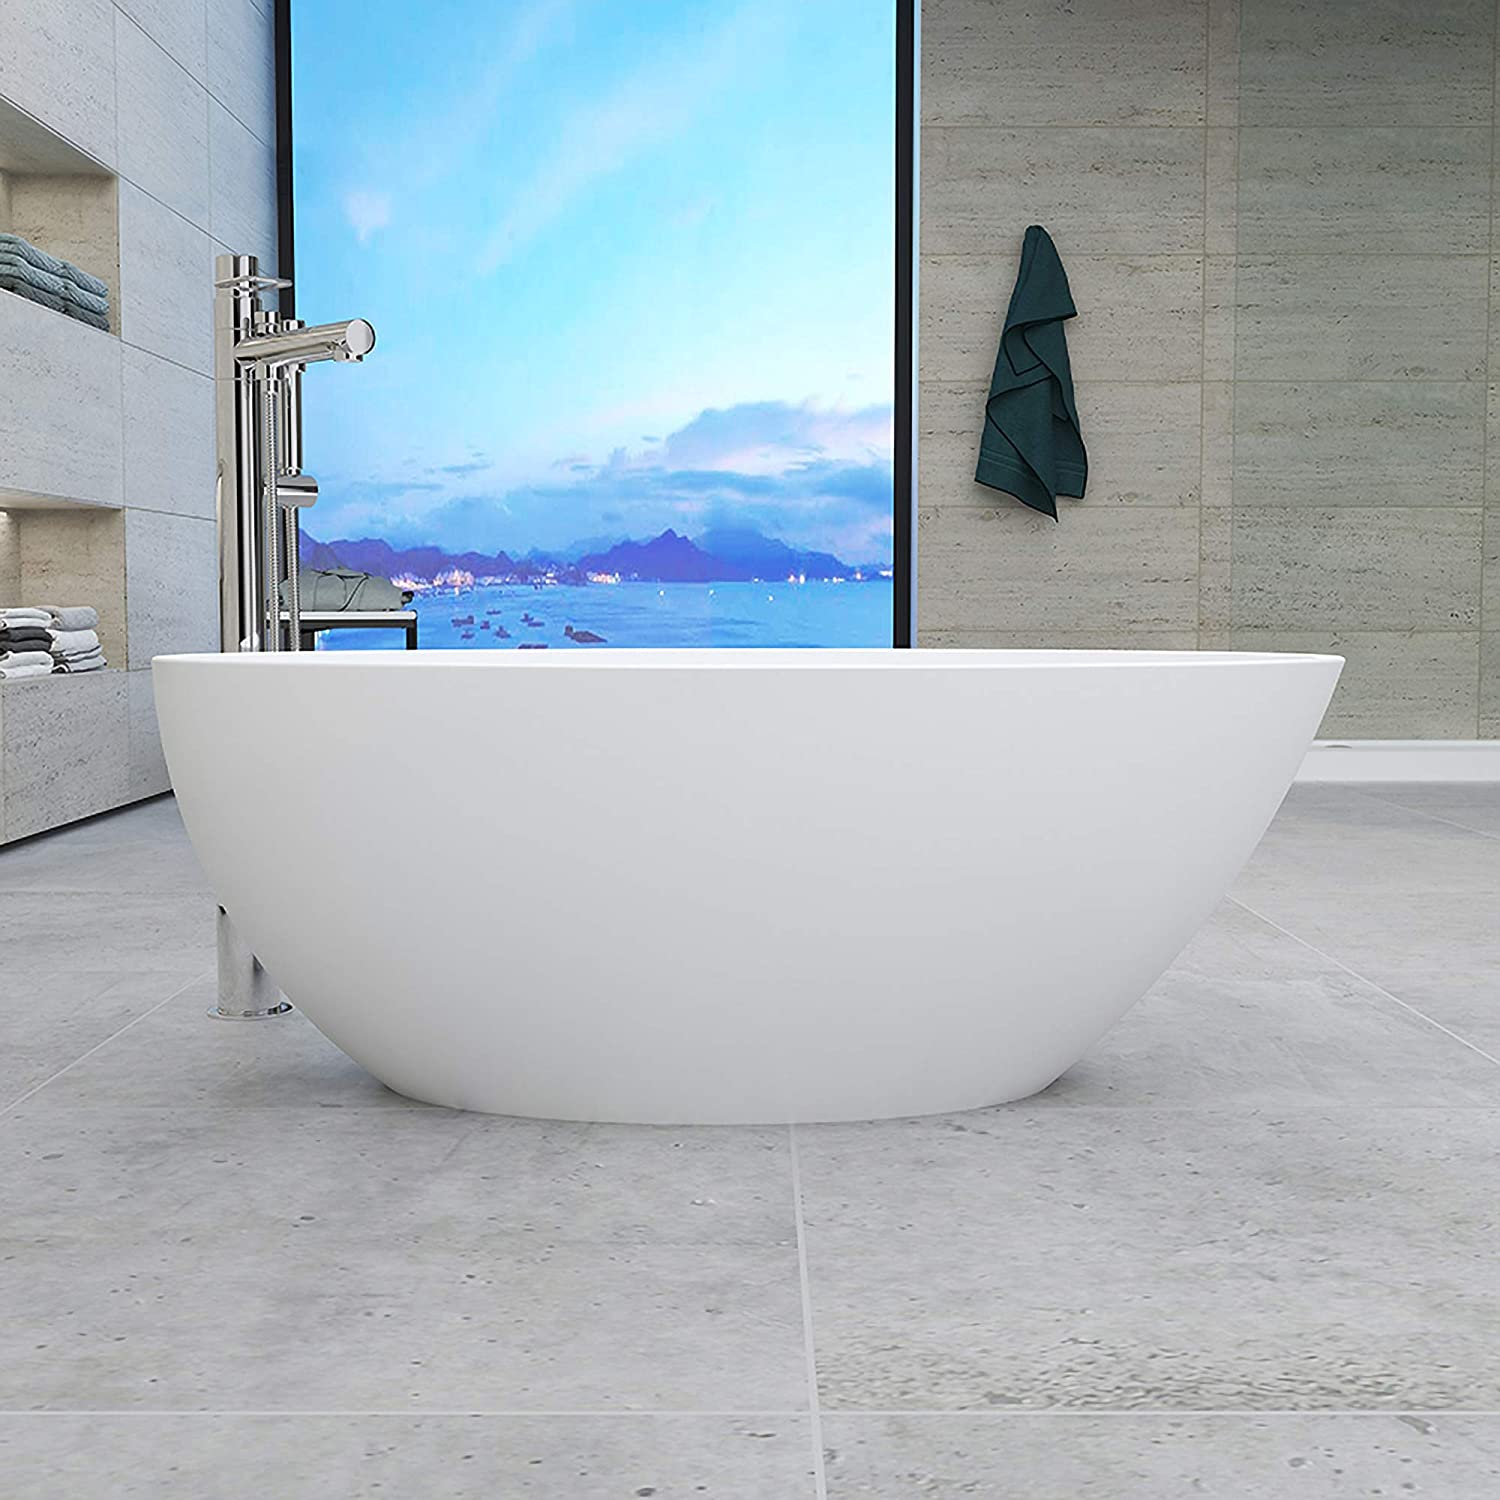 Vanity Art 55 Inch Freestanding White Acrylic Bathtub Upc Certified Modern Stand Alone Soaking Tub With Polished Chrome Slotted Overflow Pop Up Drain Va6834 S Amazon Ca Home Kitchen